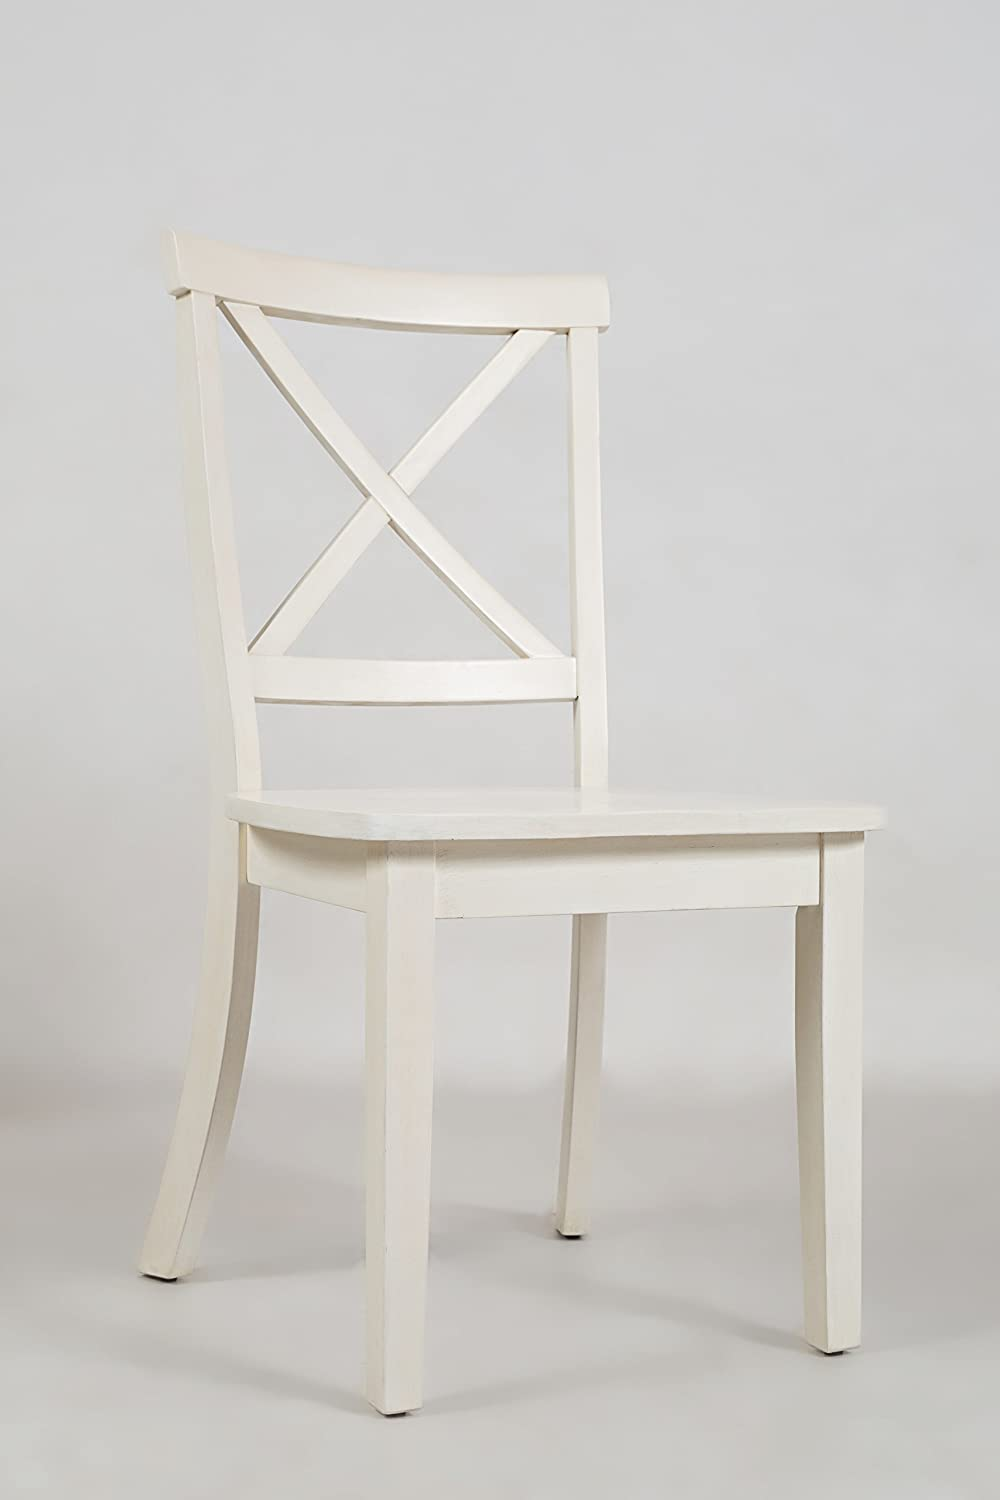 Benzara BM183805 Wooden Dining Chair with X Cross Back Design, Set of Two, White